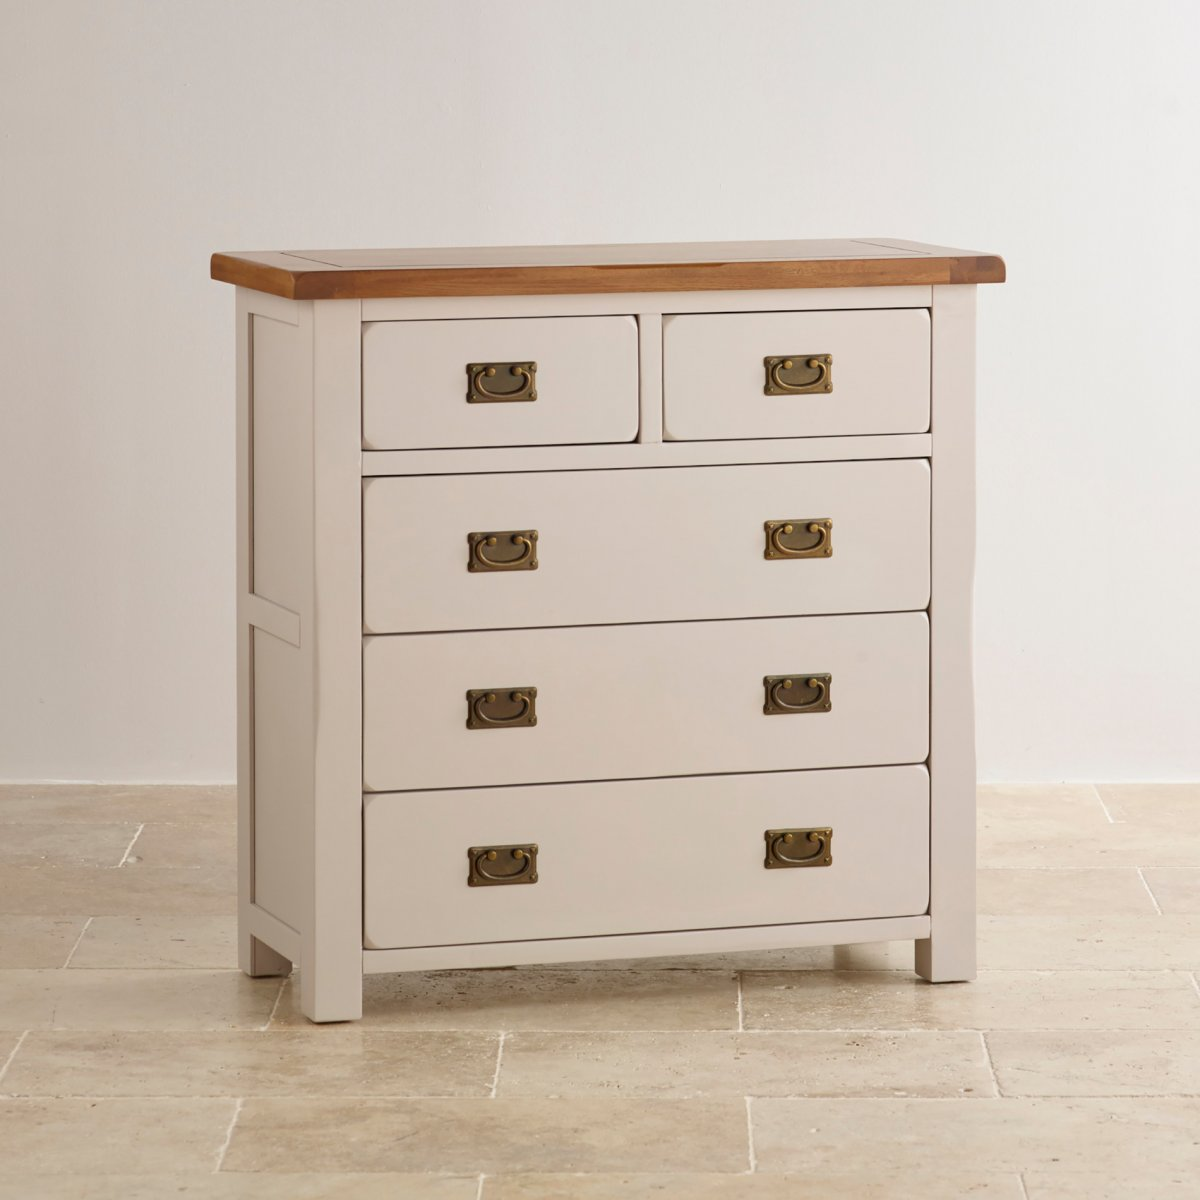 Kemble rustic solid oak painted chest of drawers